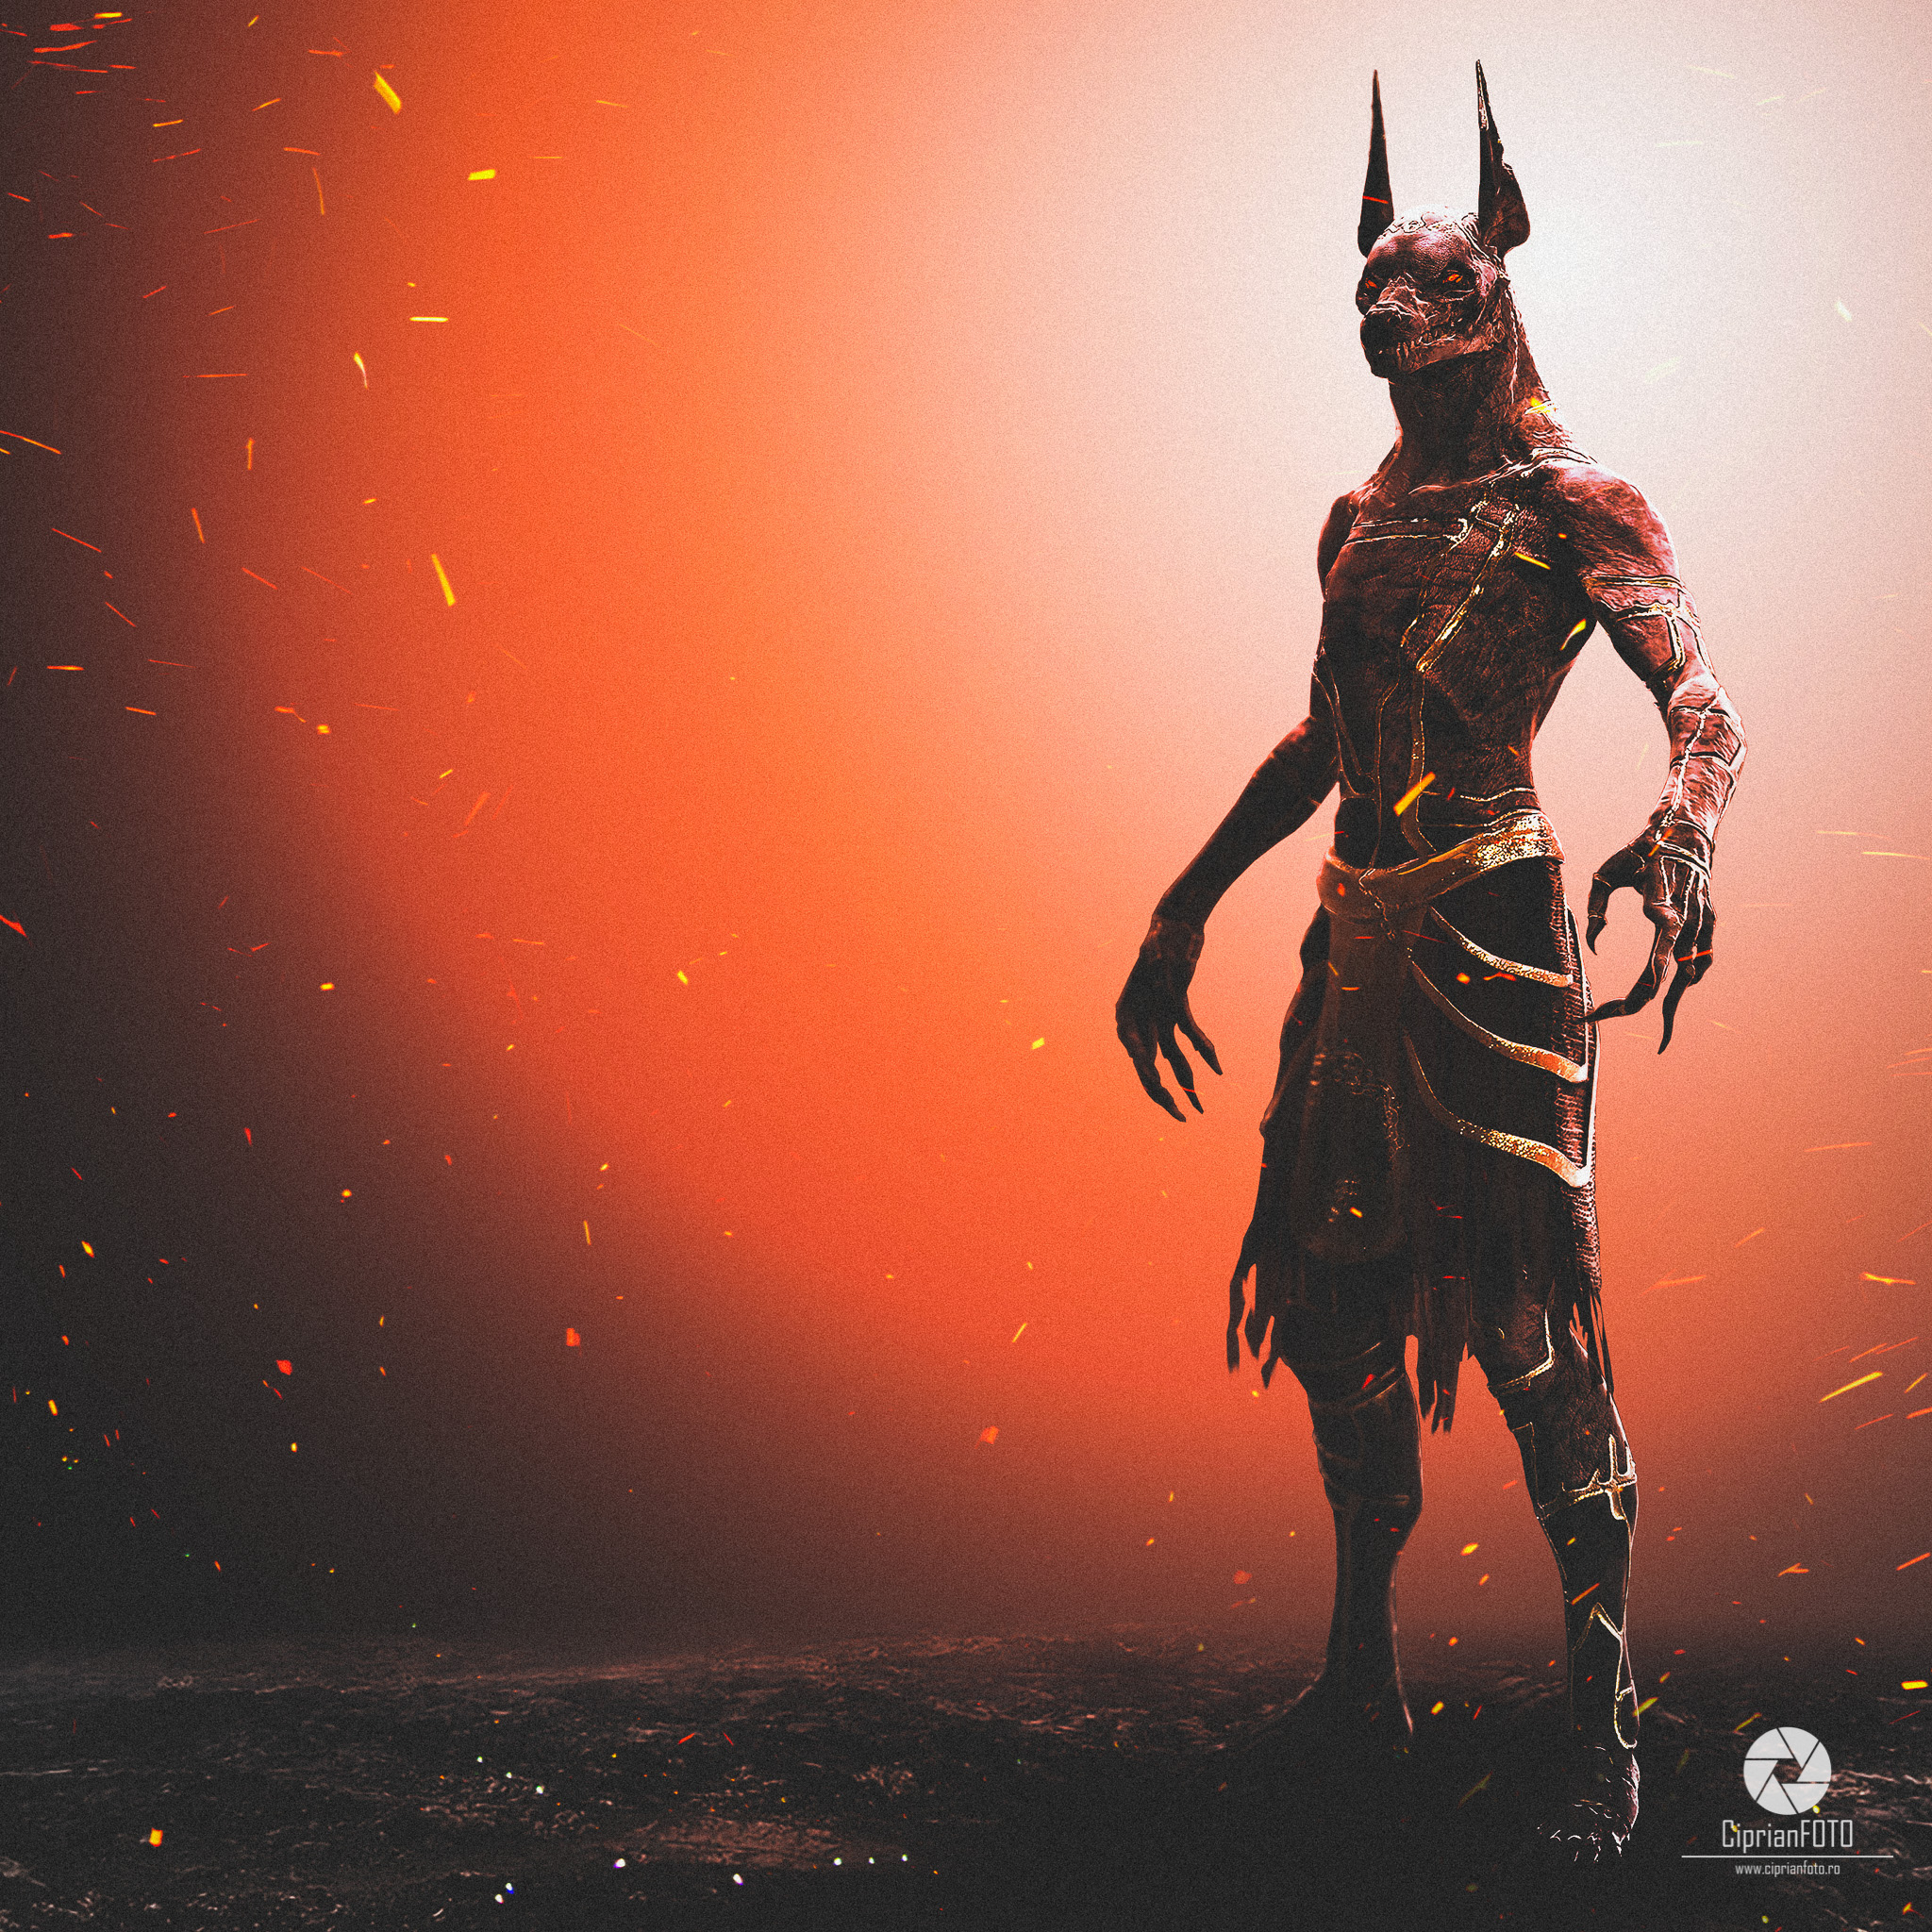 Anubis God of Death, Photoshop Manipulation Tutorial, CiprianFOTO